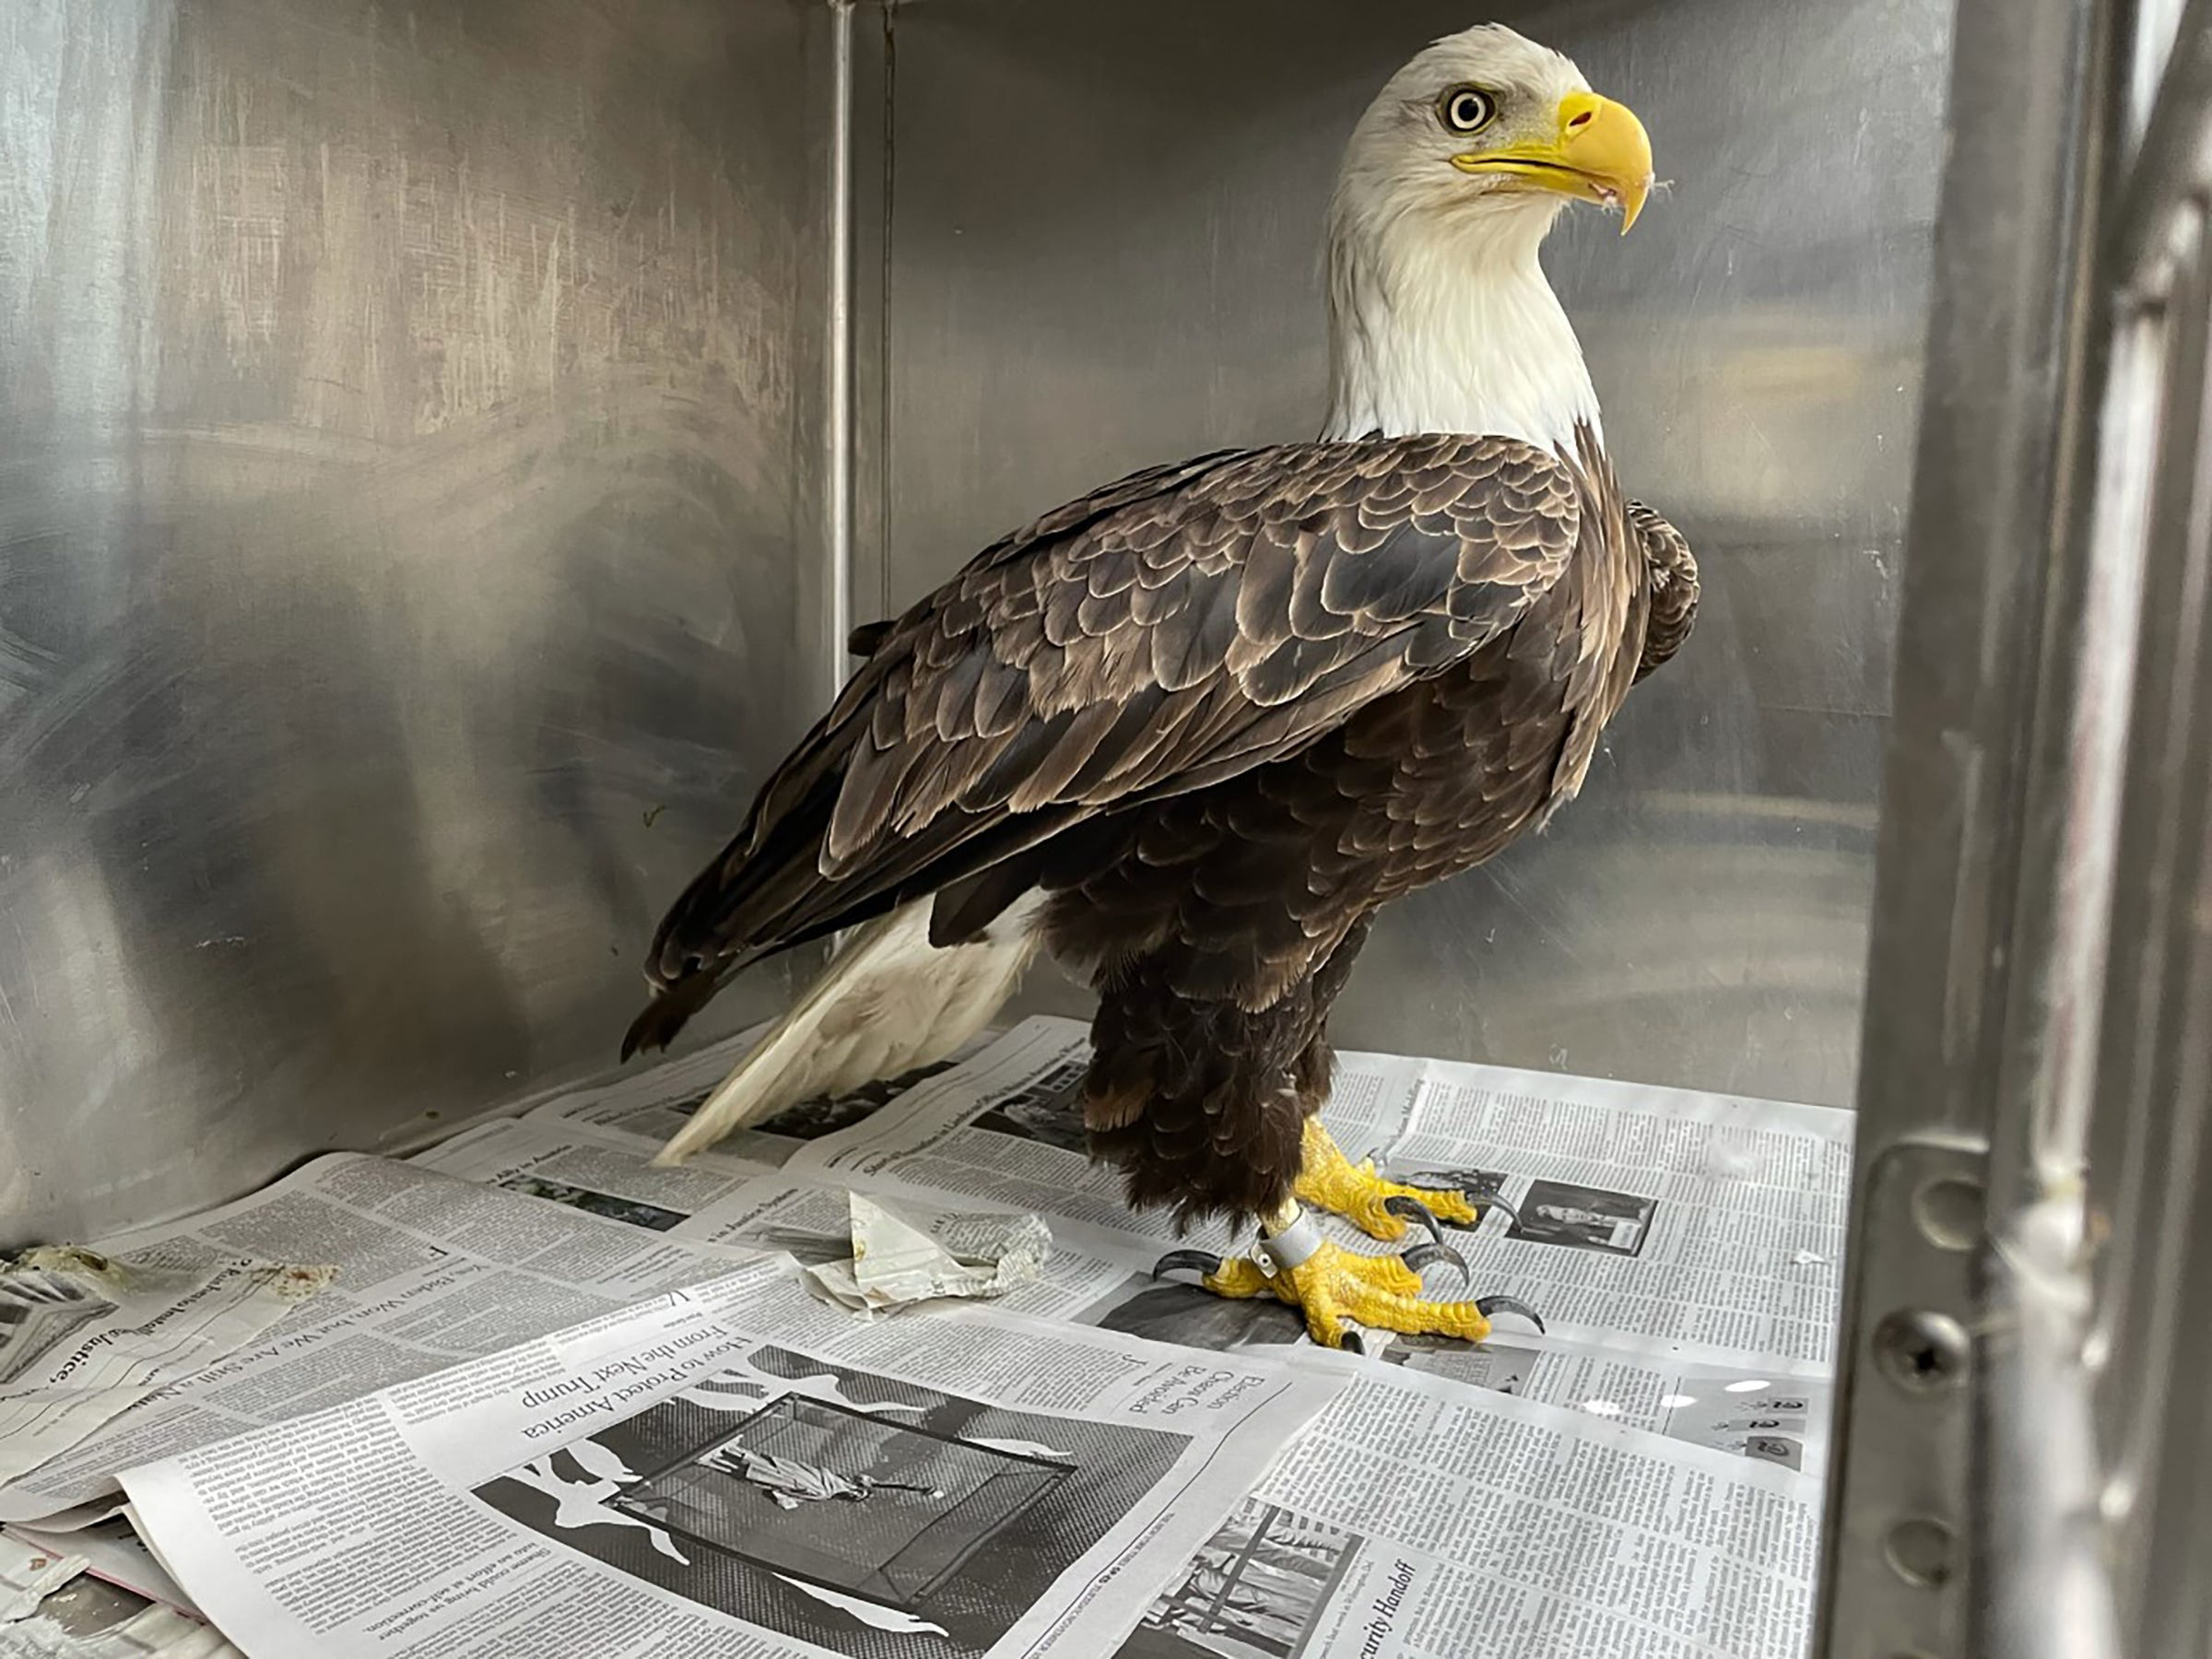 Bald eagle from Ann Arbor nest cam rescued after tangled in fishing line